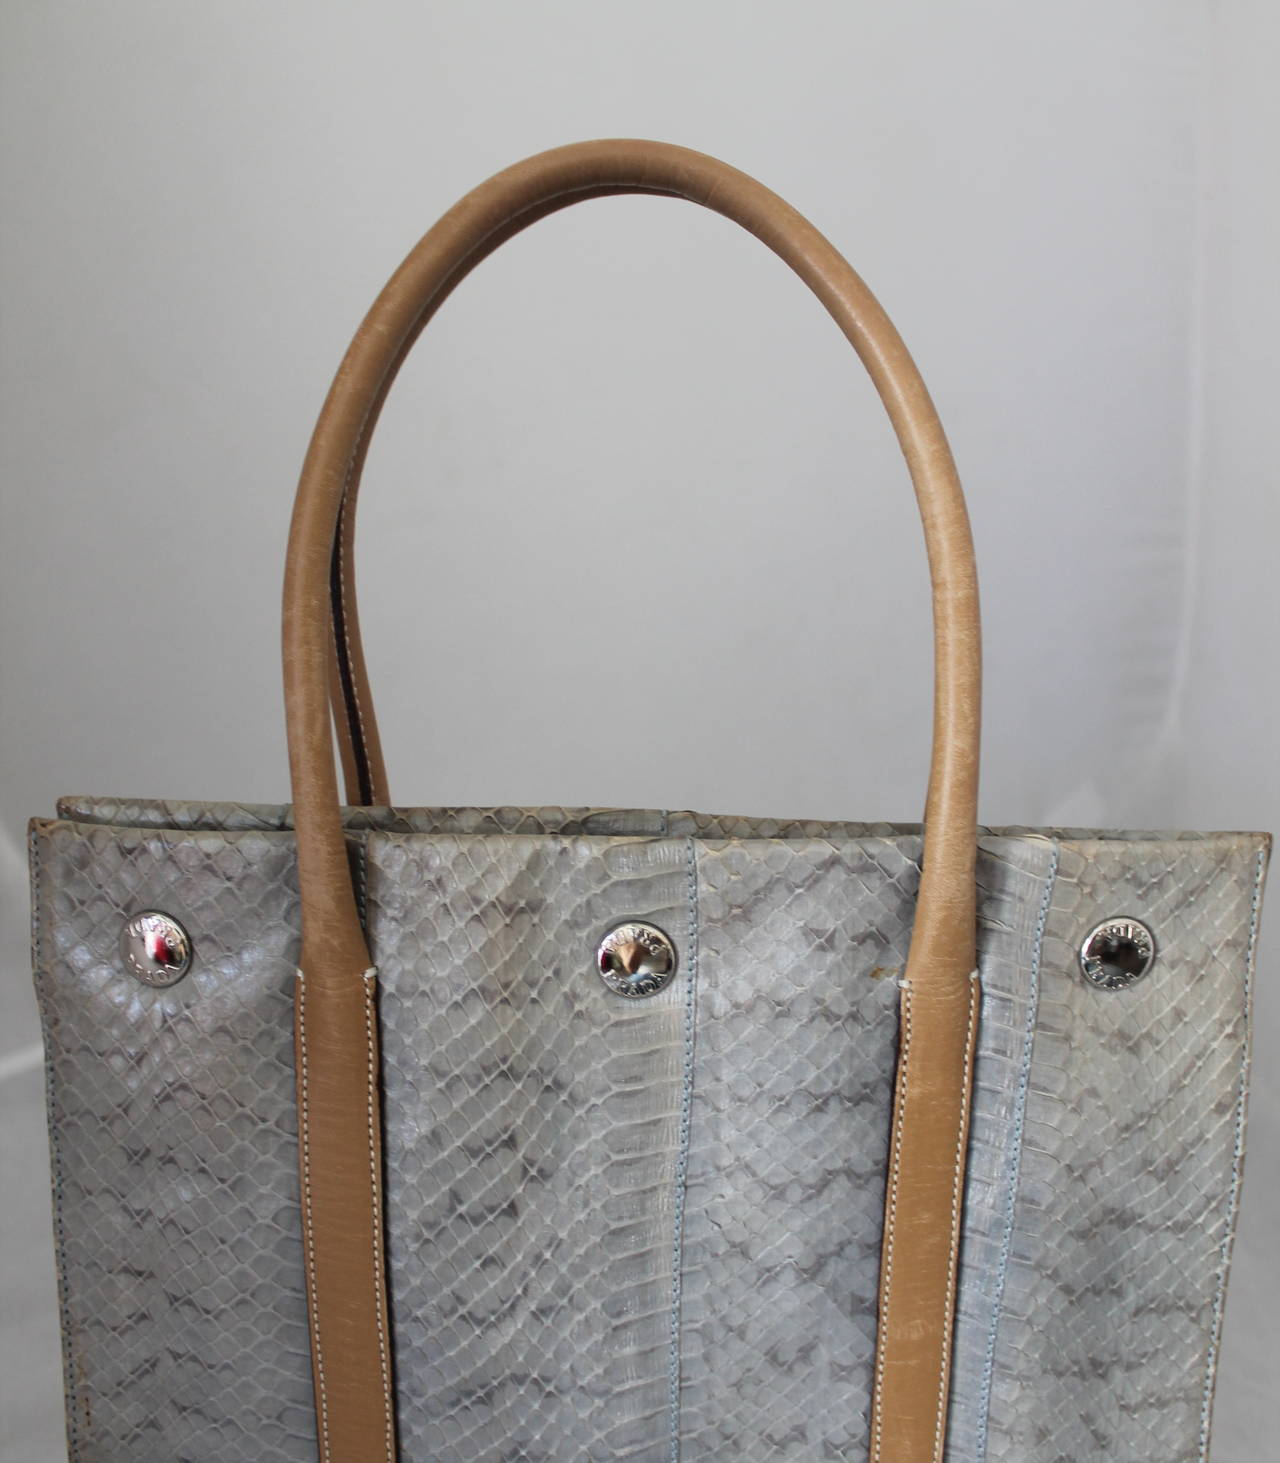 Prada Silver Snakeskin & Beige Leather Handbag 4